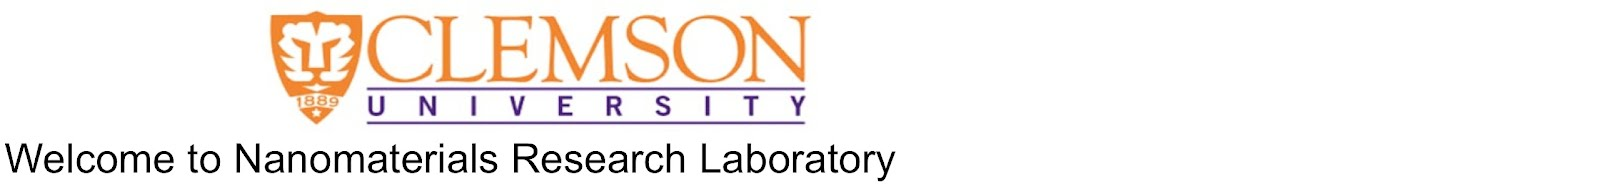 Welcome to Nanomaterials Research Laboratory at Clemson University